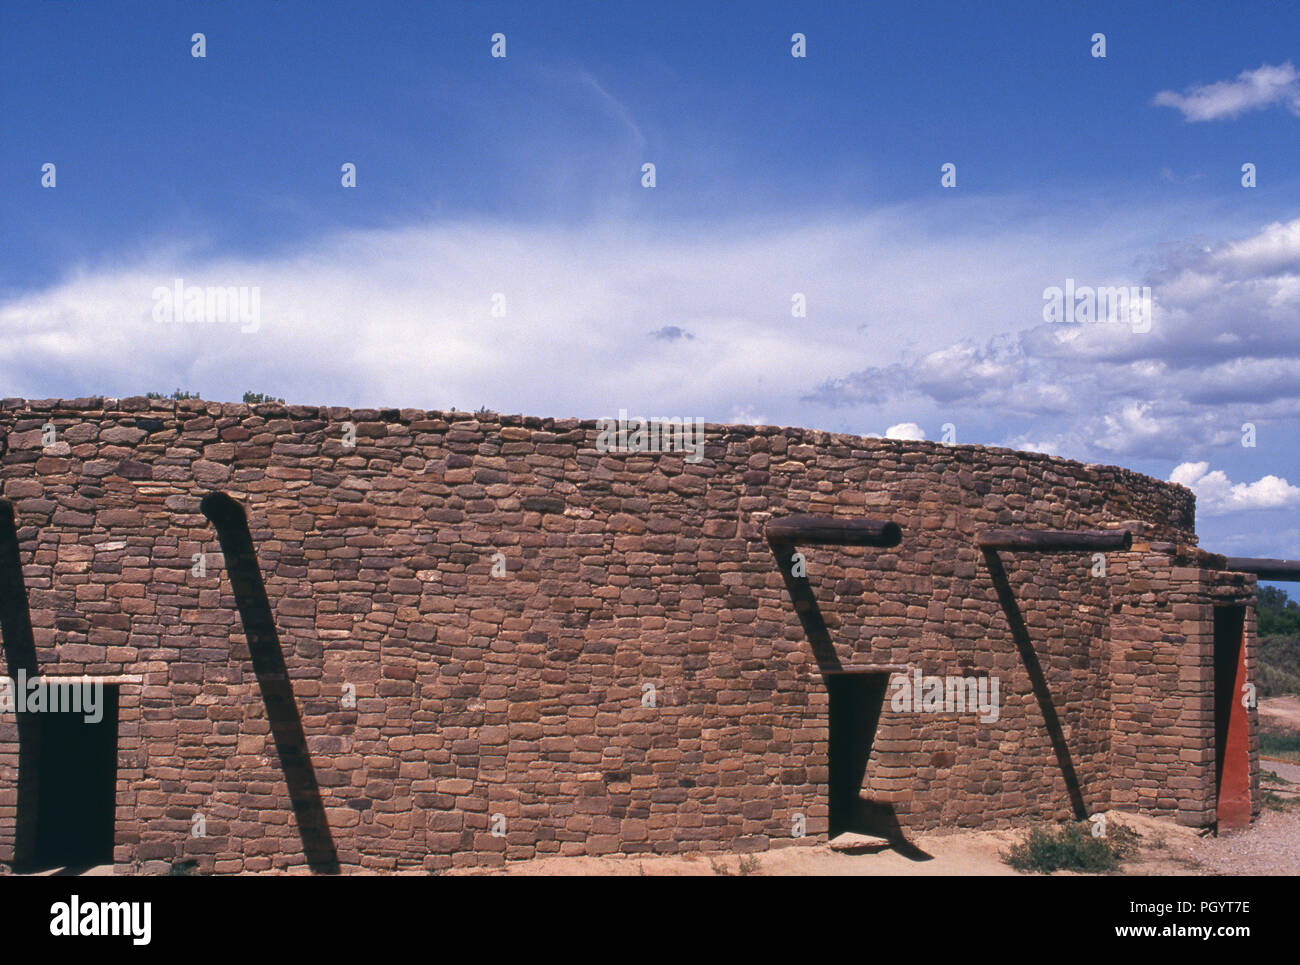 Ancestral Puebloan great kiva (restored), Aztec National Monument, New Mexico. Photograph - Stock Image